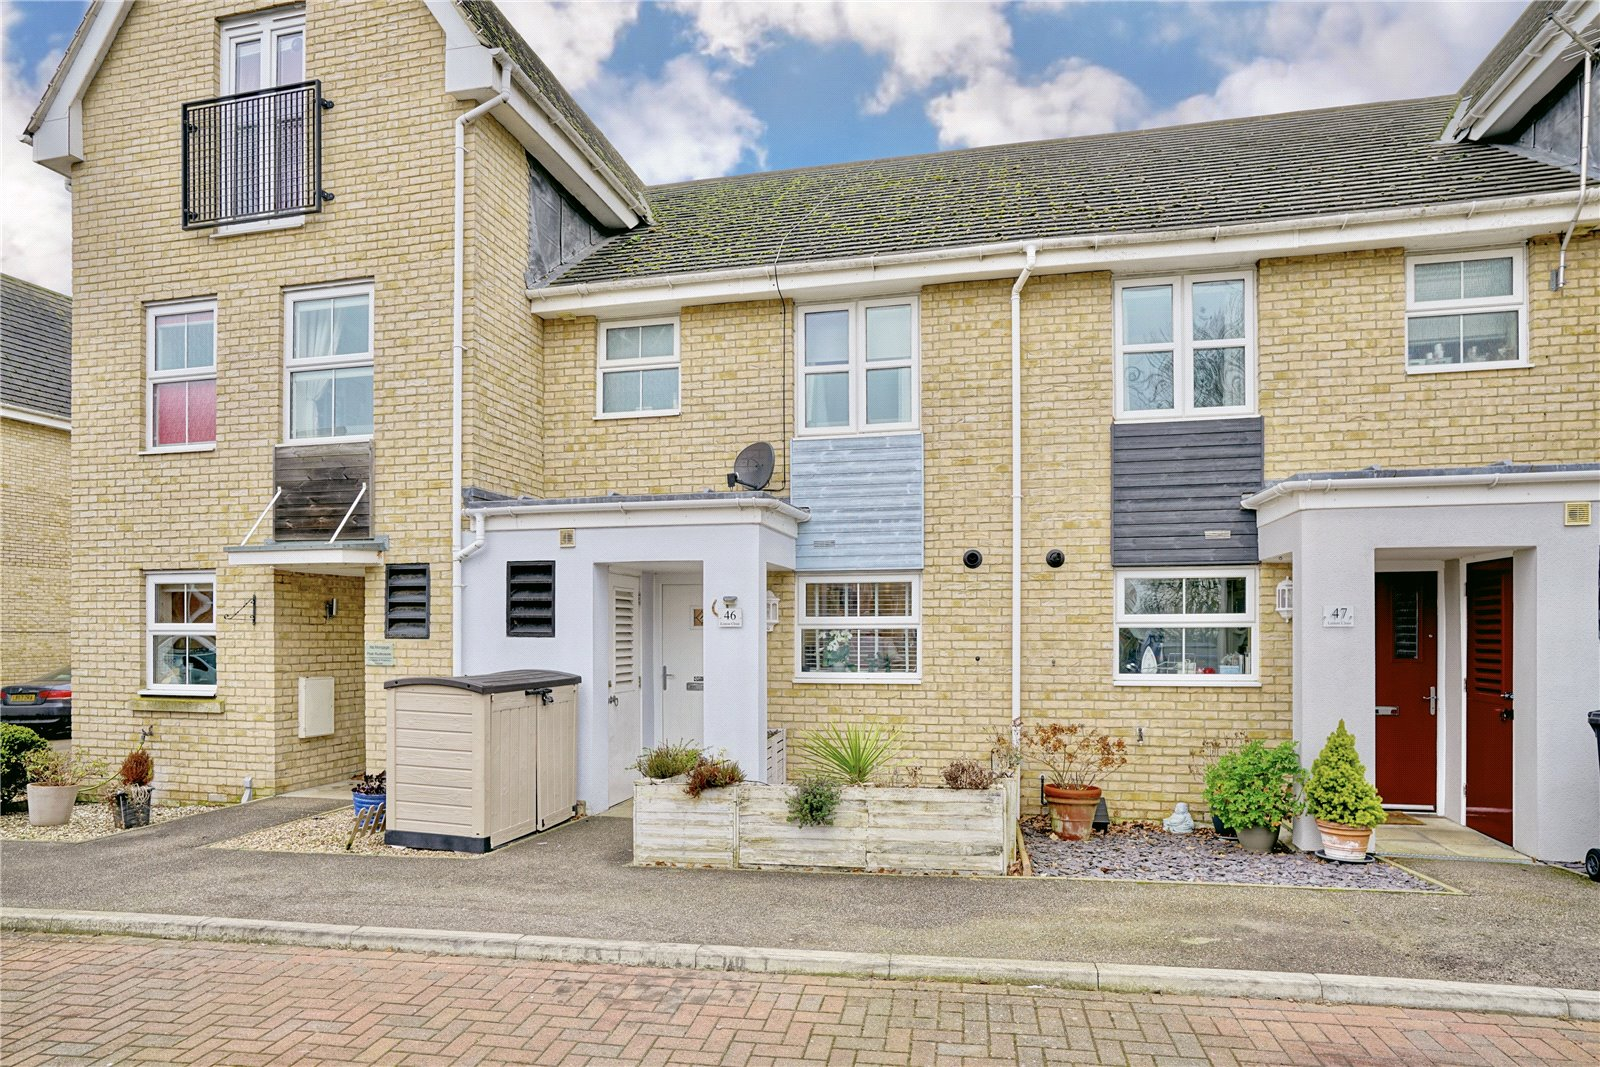 3 bed house for sale in Linton Close, Eaton Socon - Property Image 1